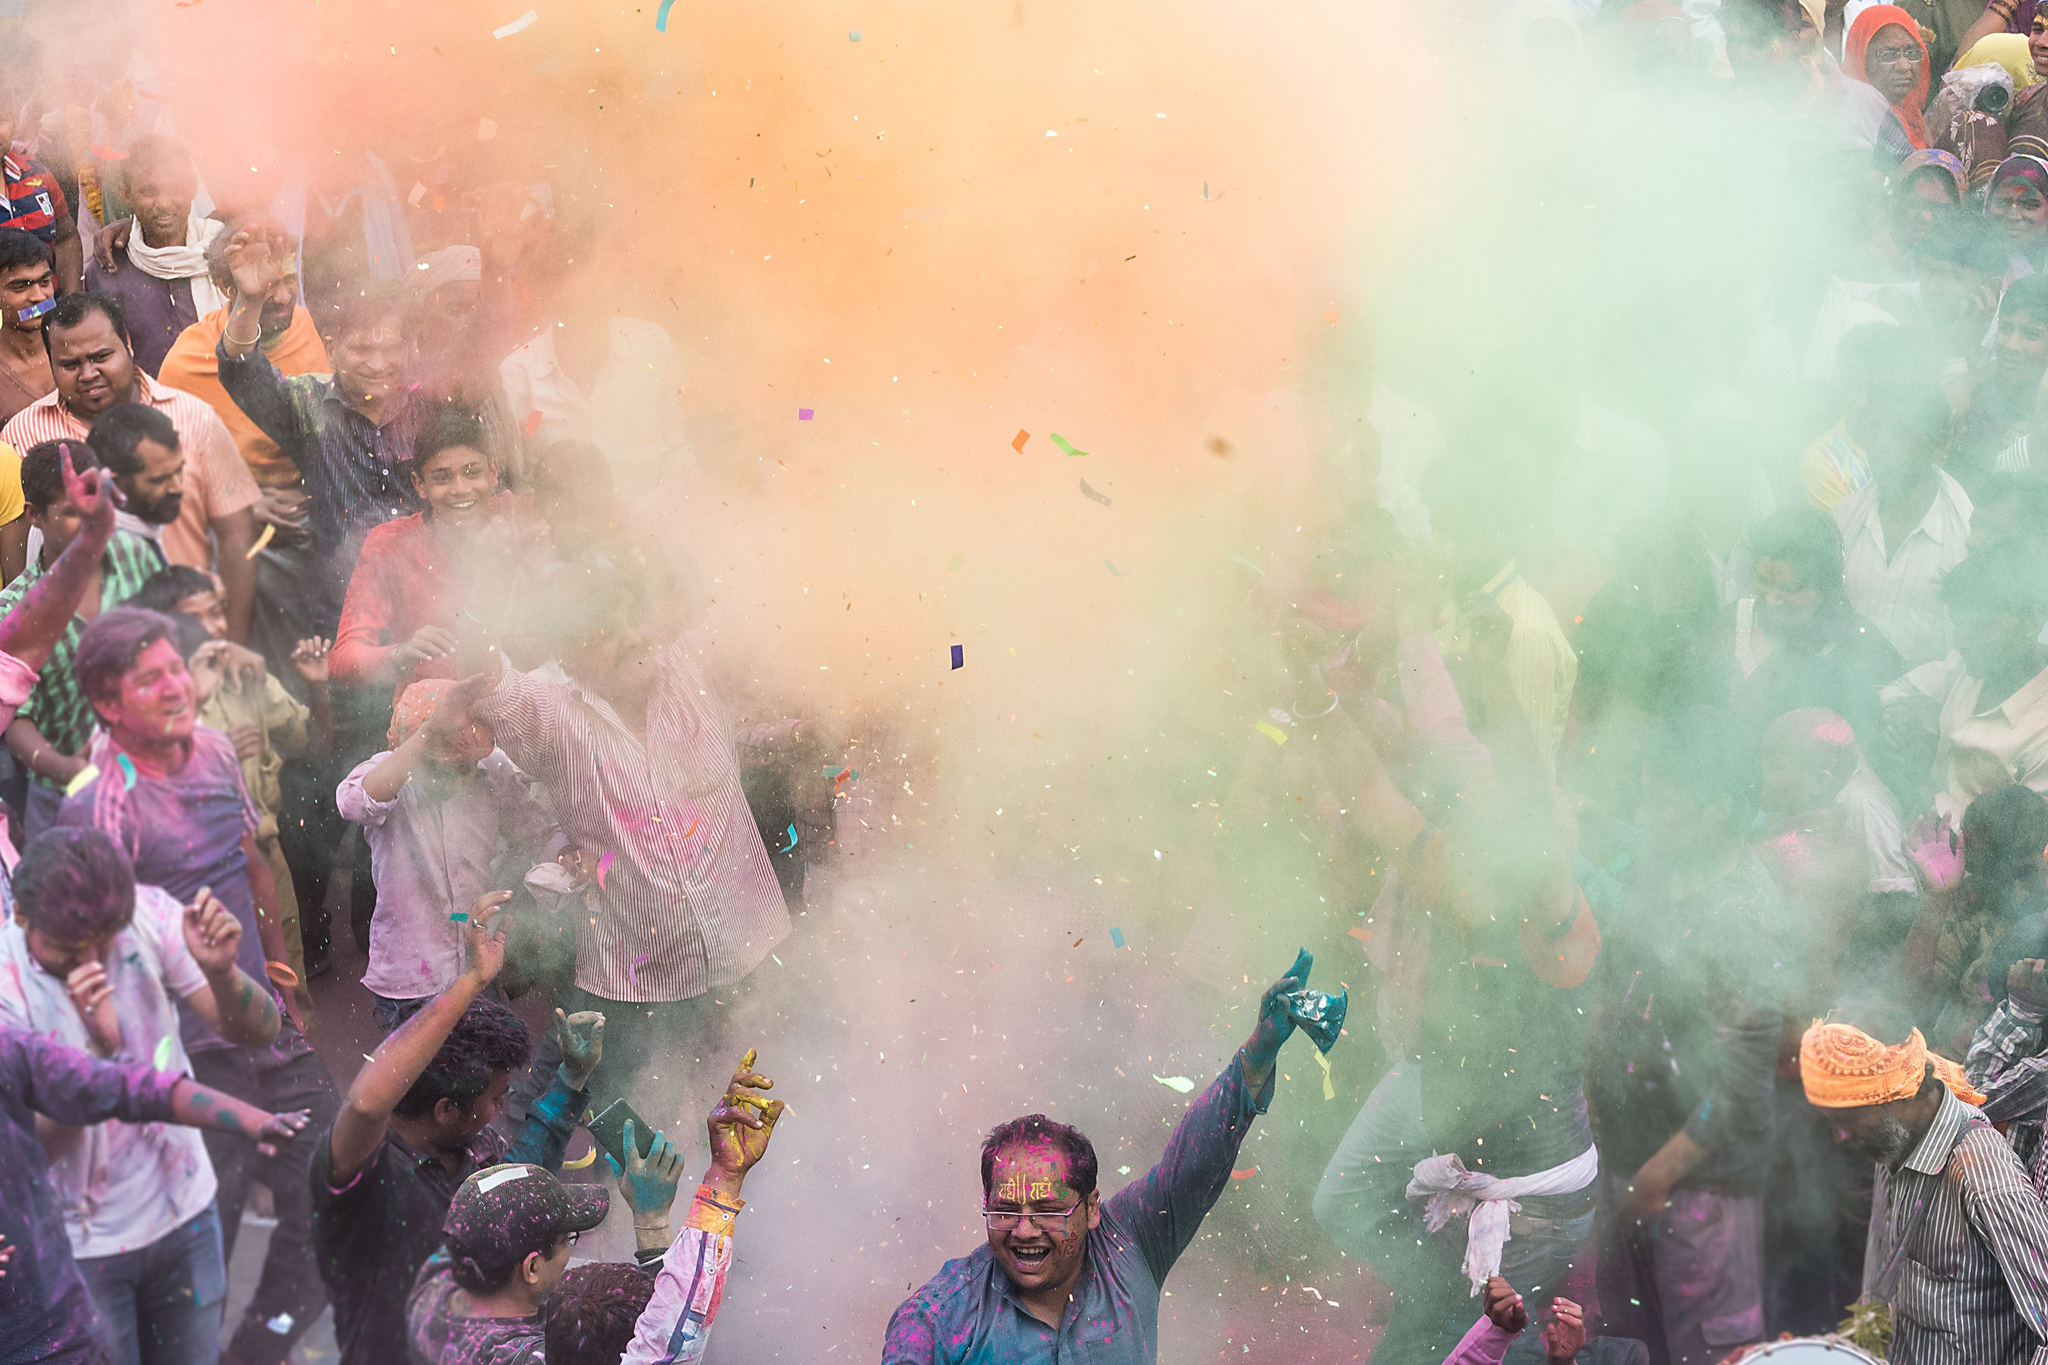 Indian villagers are covered in coloured...Indian villagers are covered in coloured powders during the Lathmar Holi festival at the Radha Rani temple in Barsana, some 130kms from New Delhi on March 16, 2016.  During the Lathmar Holi festival, the women of Barsana, the legendary hometown of Radha, consort of Hindu God Krishna, attack the men from Nandgaon, the hometown of Hindu God Krishna, with wooden sticks in response to their efforts to put color on them. / AFP PHOTO / FranÁois Xavier MARITFRANCOIS XAVIER MARIT/AFP/Getty Images